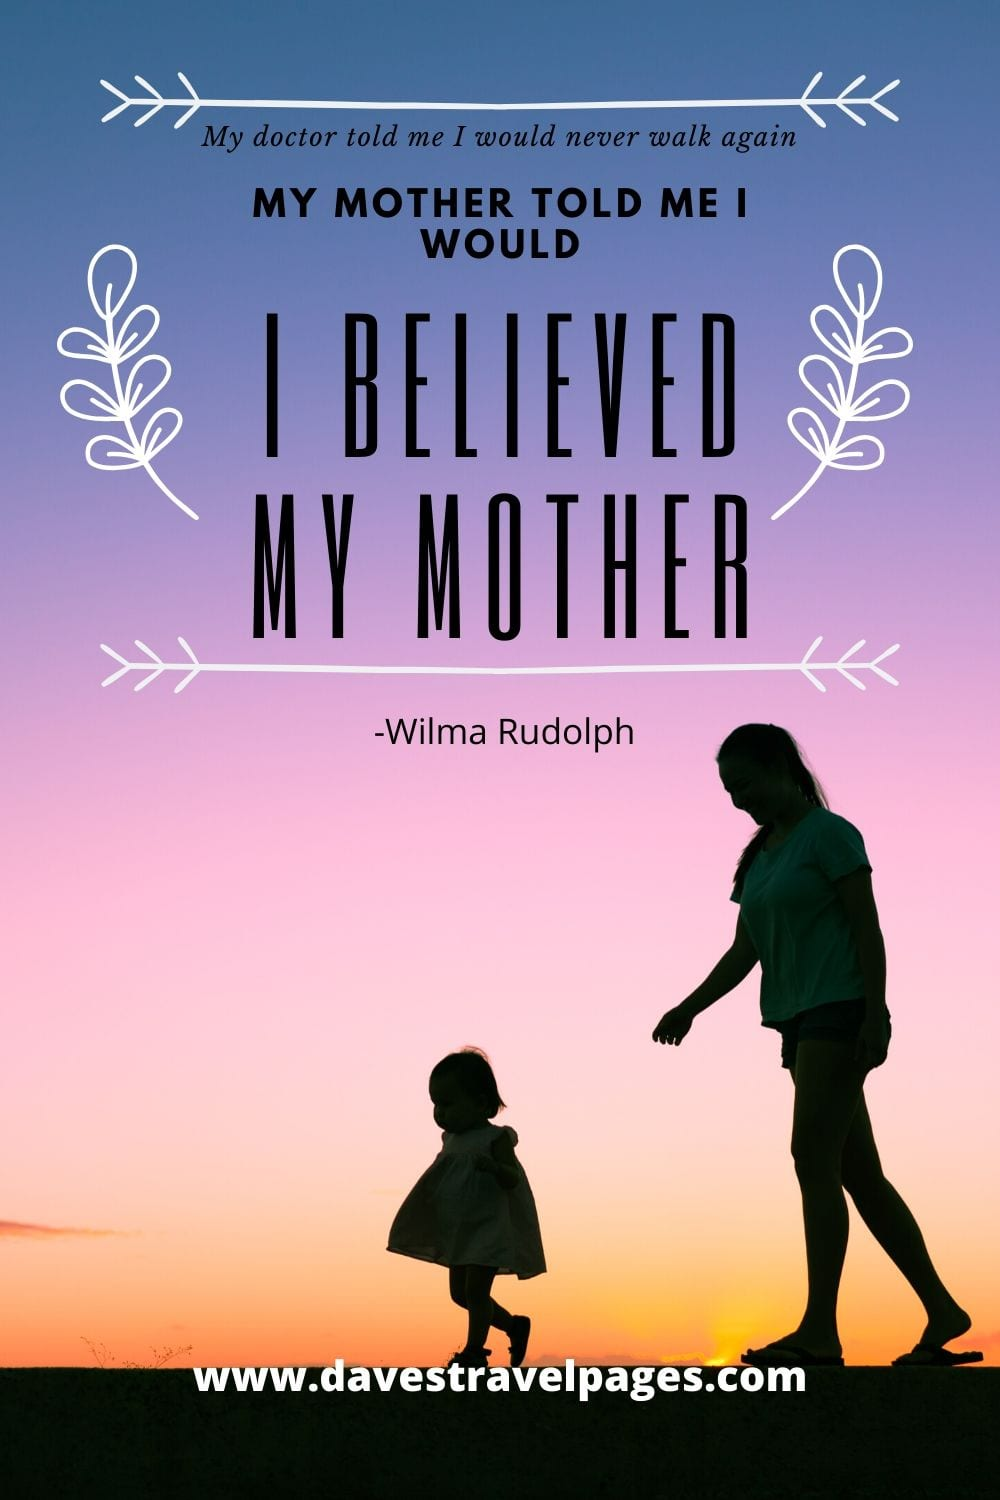 My doctor told me I would never walk again. My mother told me I would, I believed my mother - Wilma Rudolph